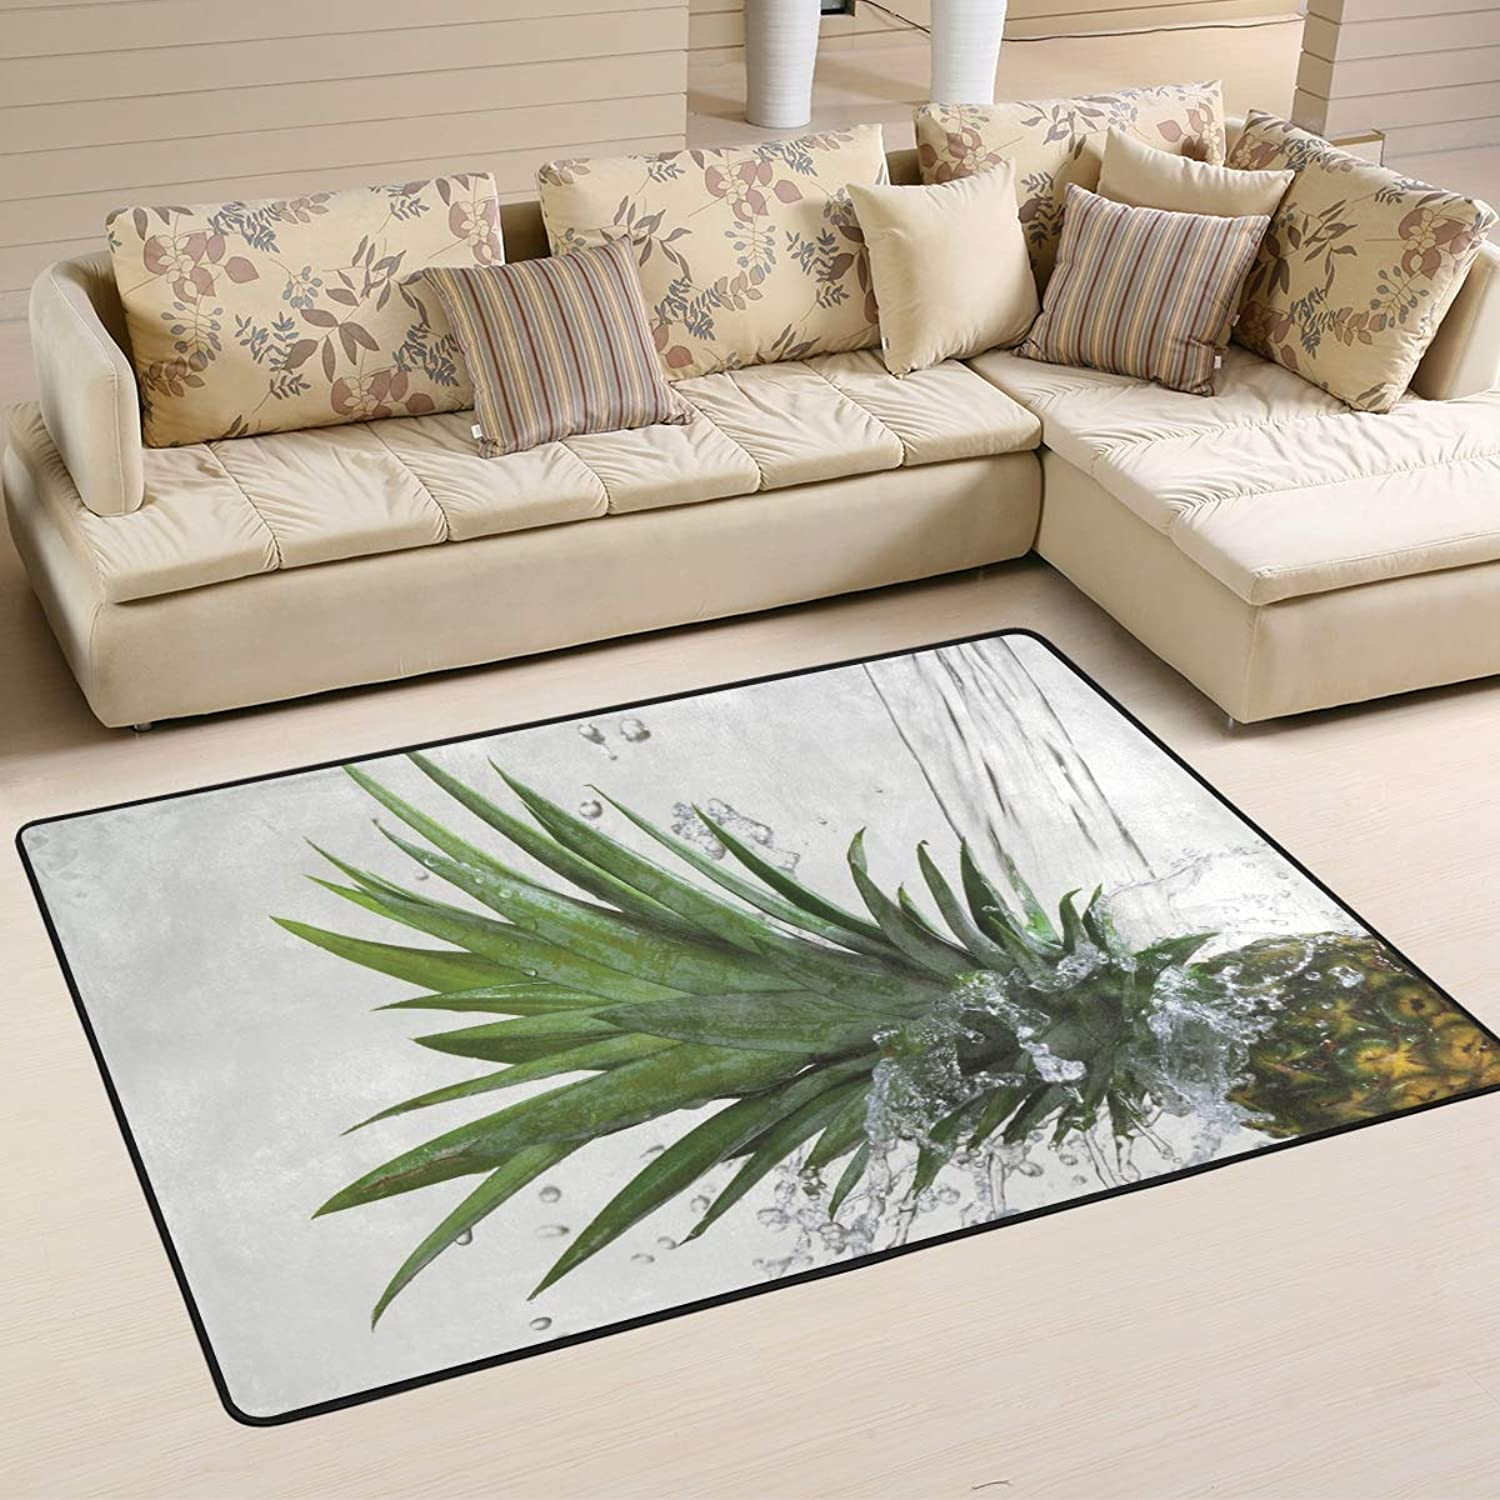 Area Rugs Doormats Pineapple Water Soft Carpet Mat 6'x4' (72x48 Inches) for Living Dining Dorm Room Bedroom Home Decorative